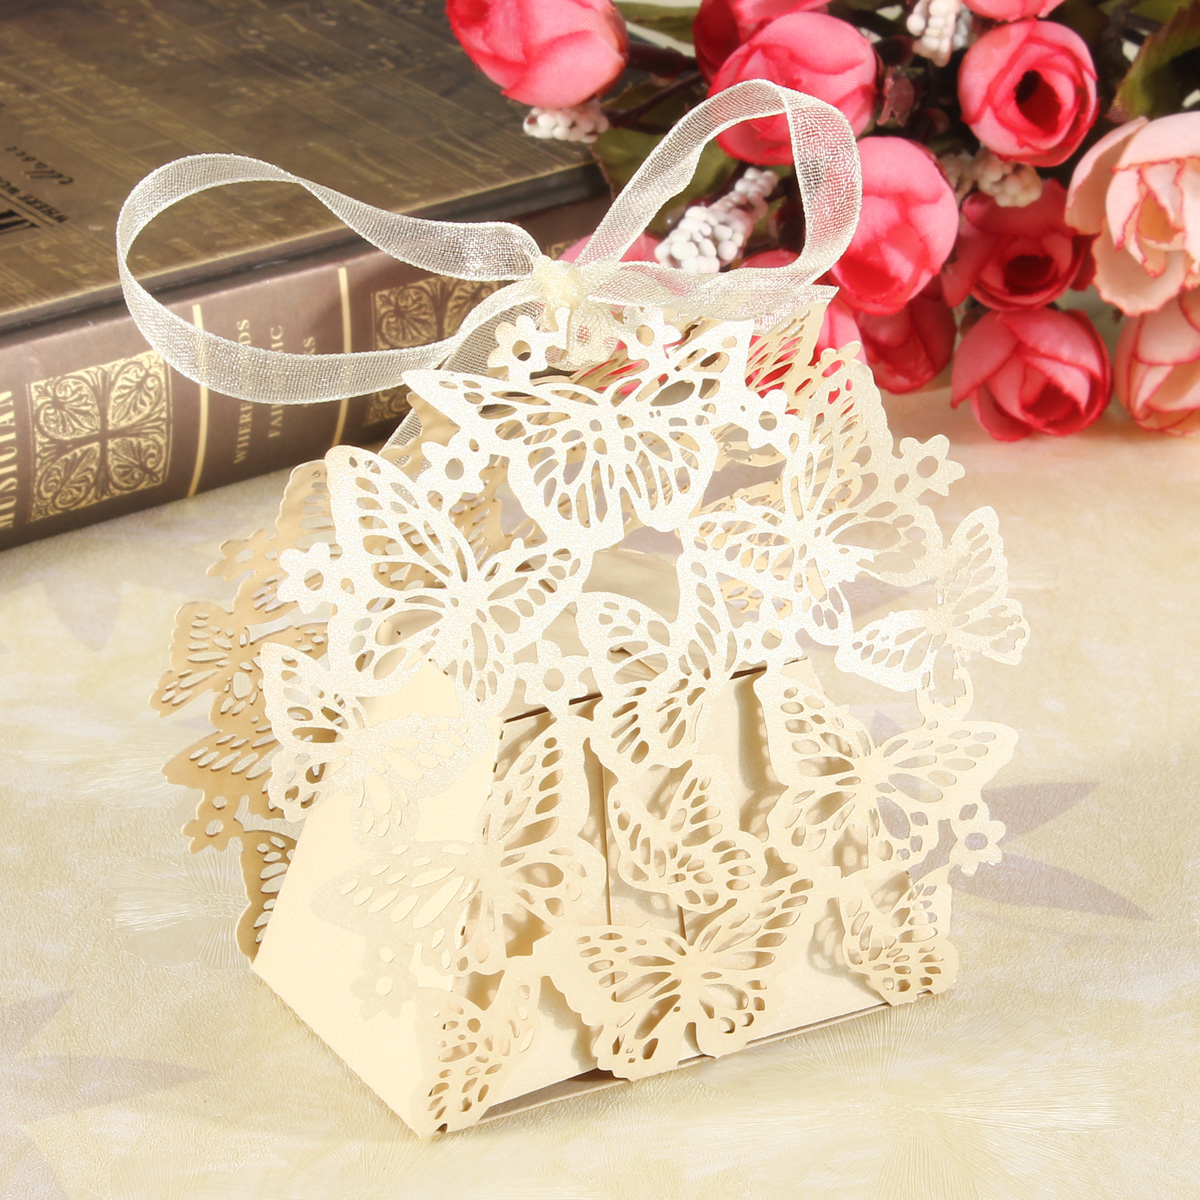 50 Butterfly Wedding Bridal Party Candy Favor Boxes Bonbonniere Gift With Ribbon